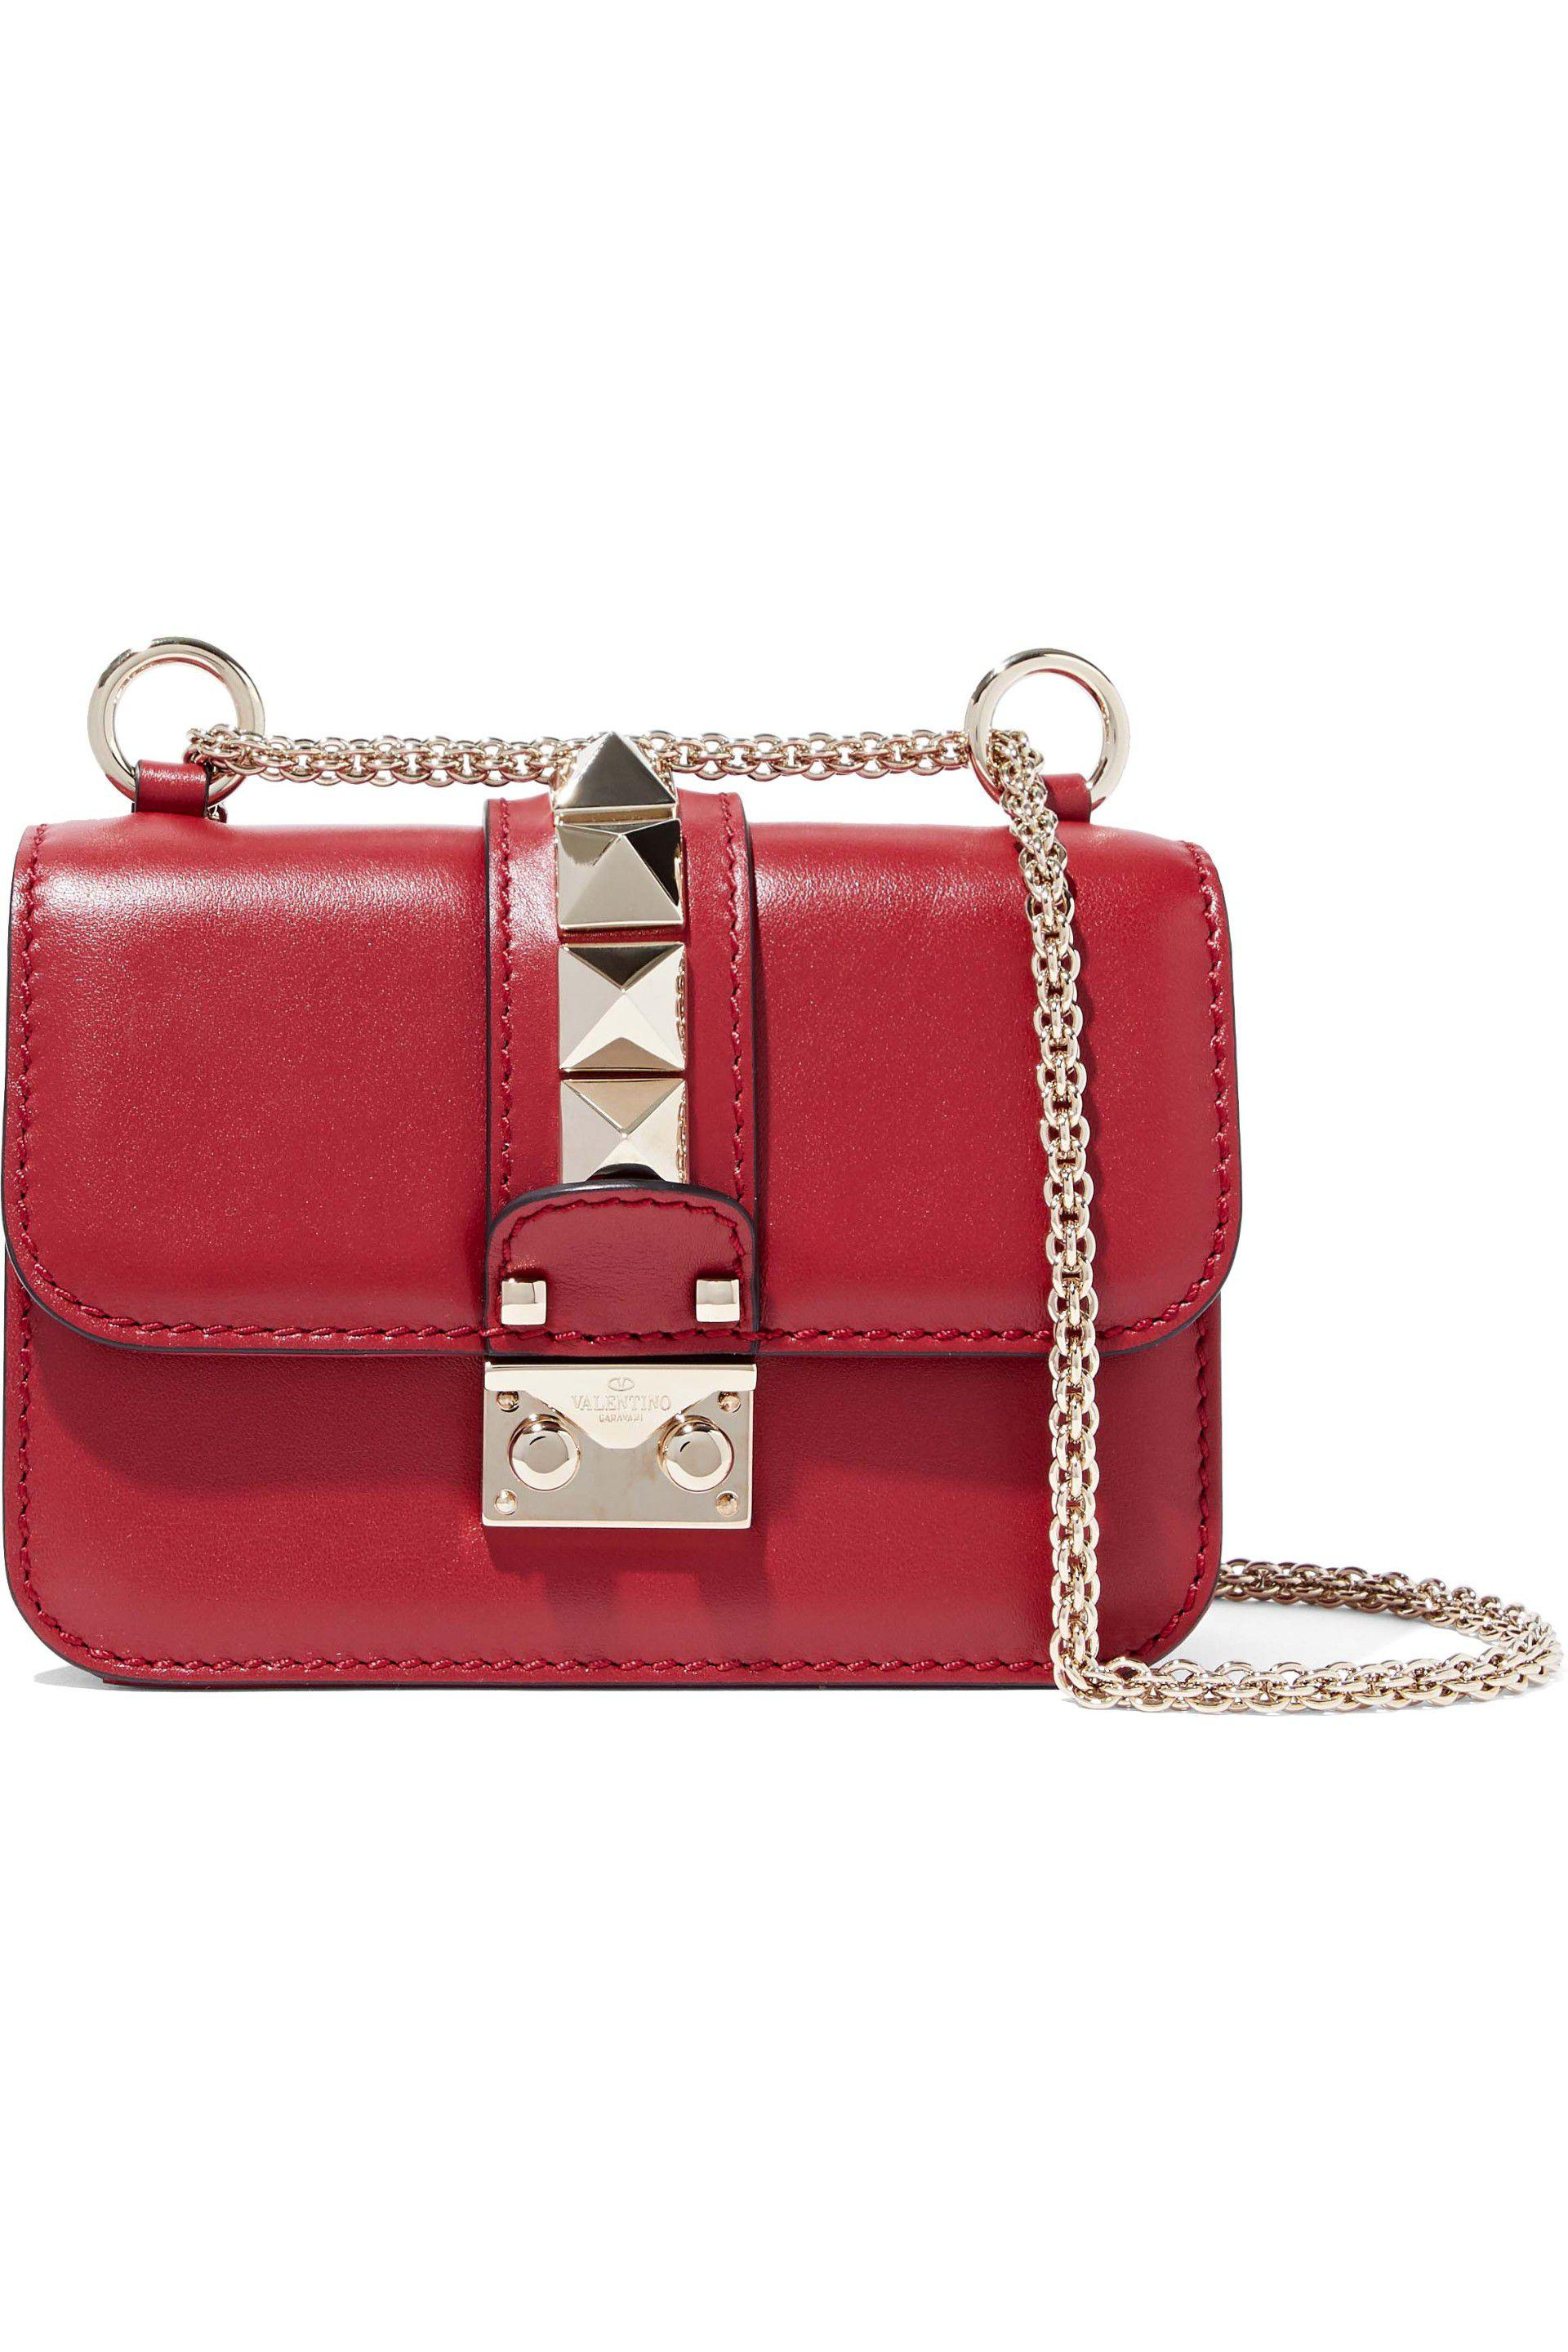 c343e4414d Lyst - Valentino Glam Lock Studded Leather Shoulder Bag in Red